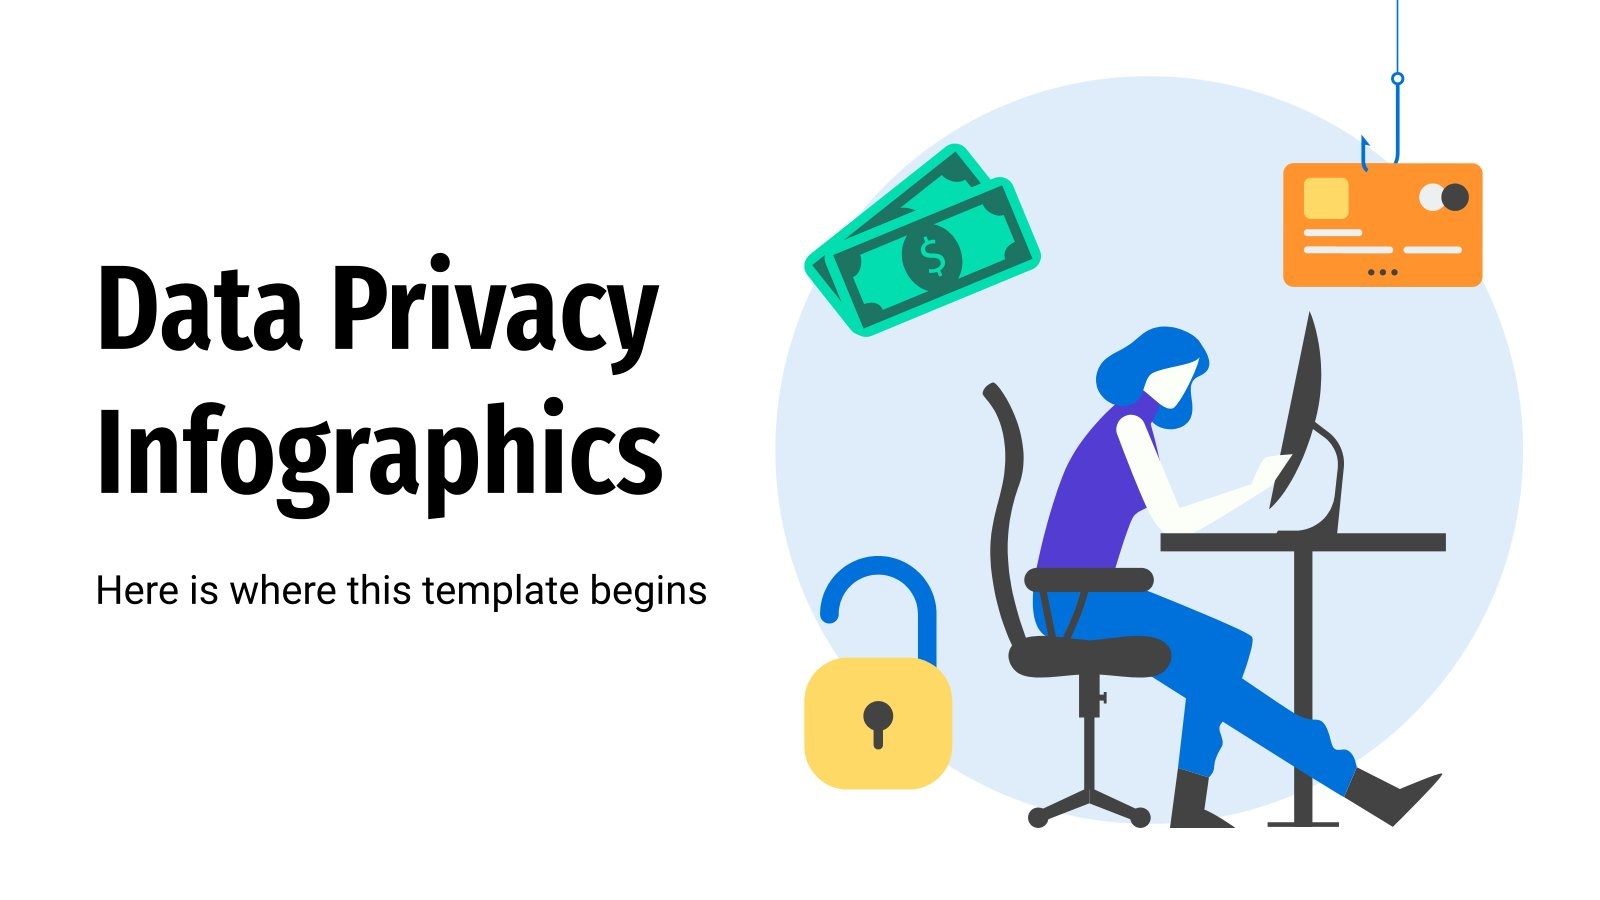 Data Privacy Infographics presentation template